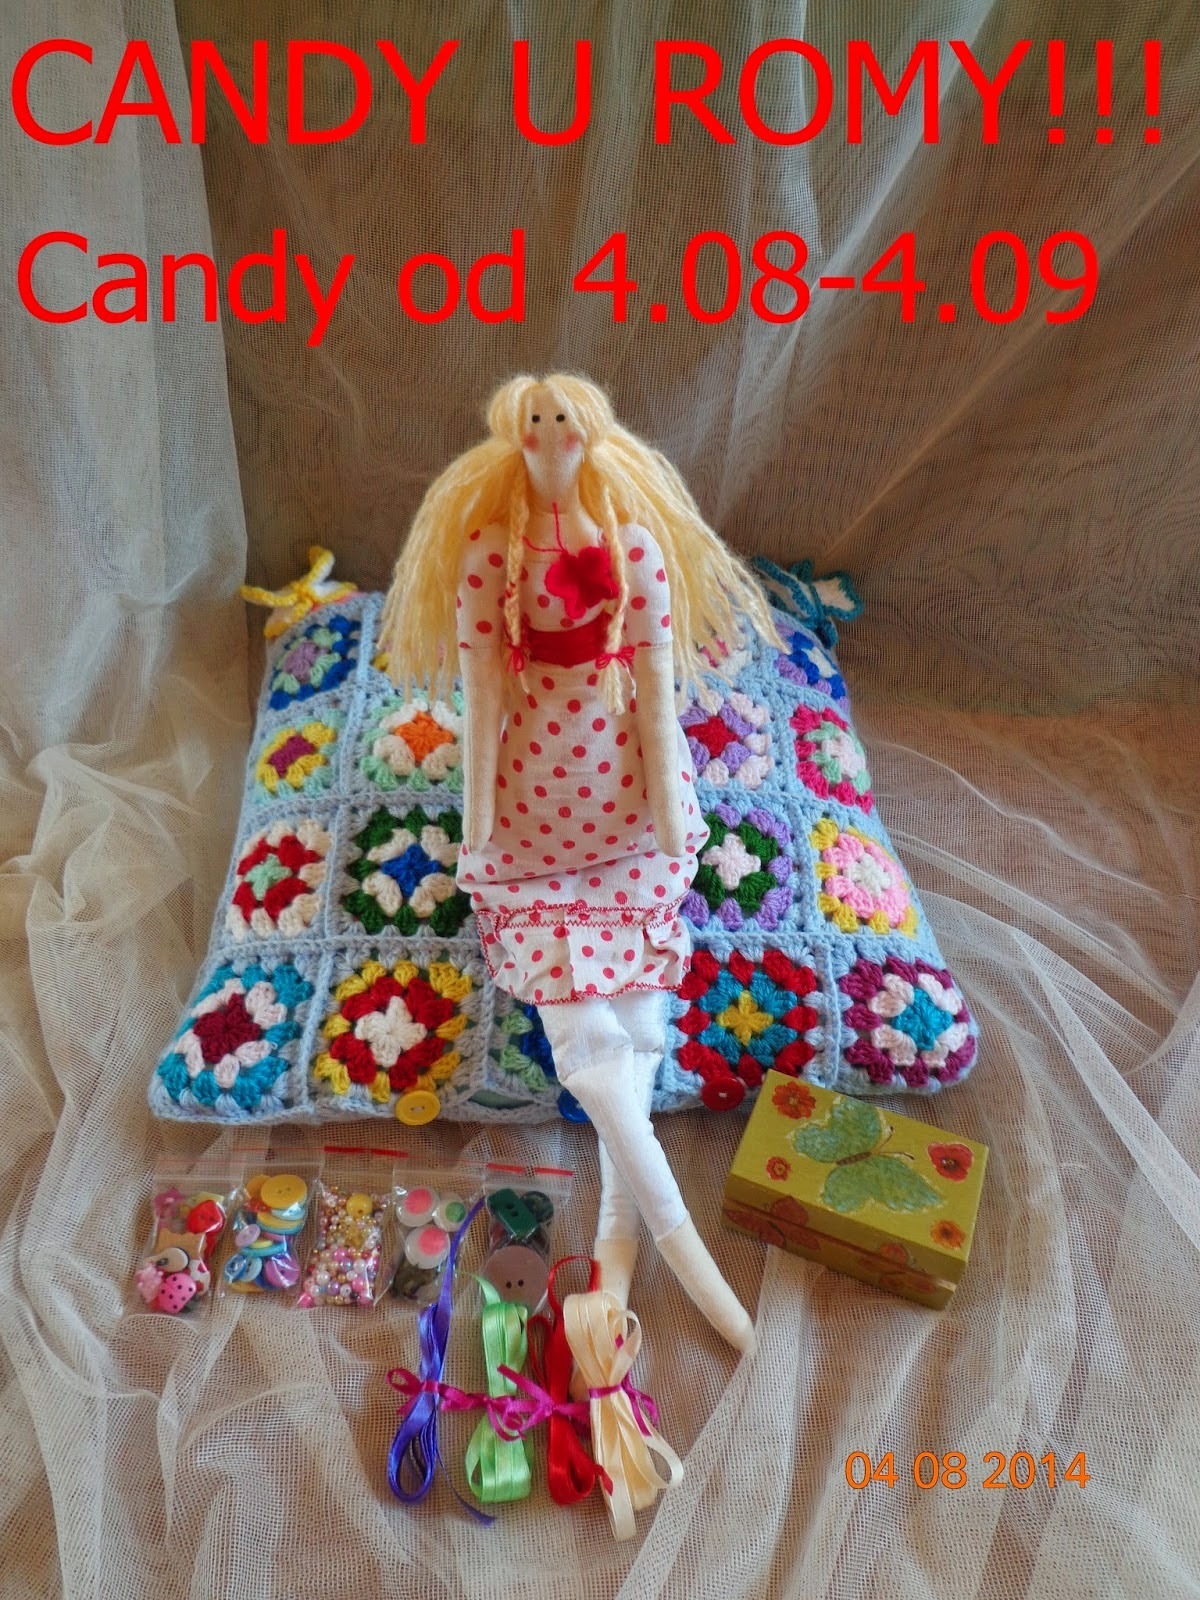 Ekstra Candy do 4.09